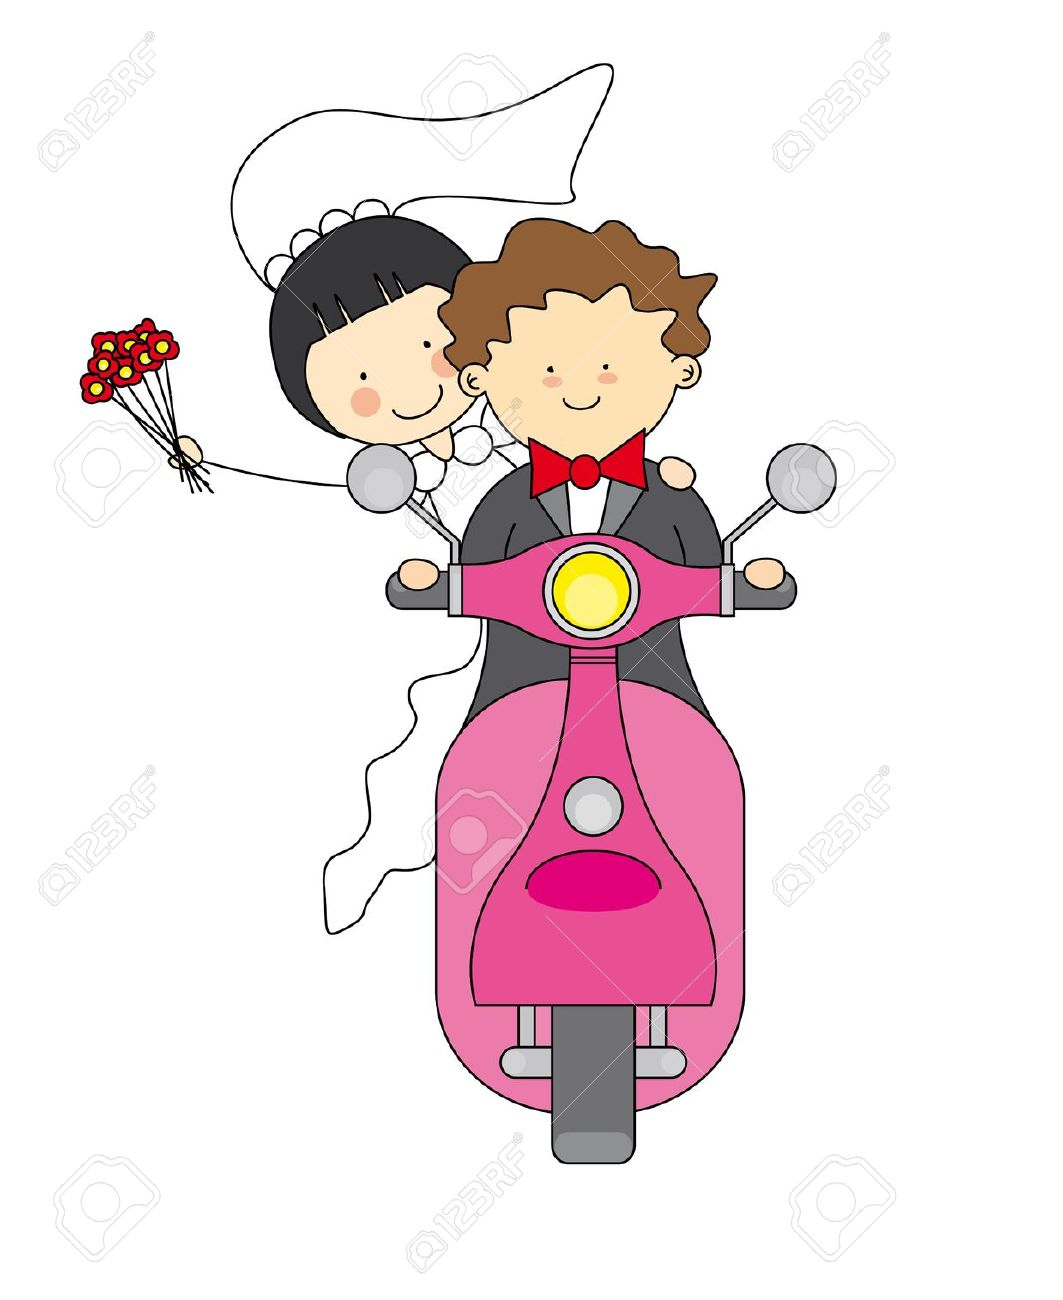 Kopel clipart just married Couple images Pinterest Clipart Couple